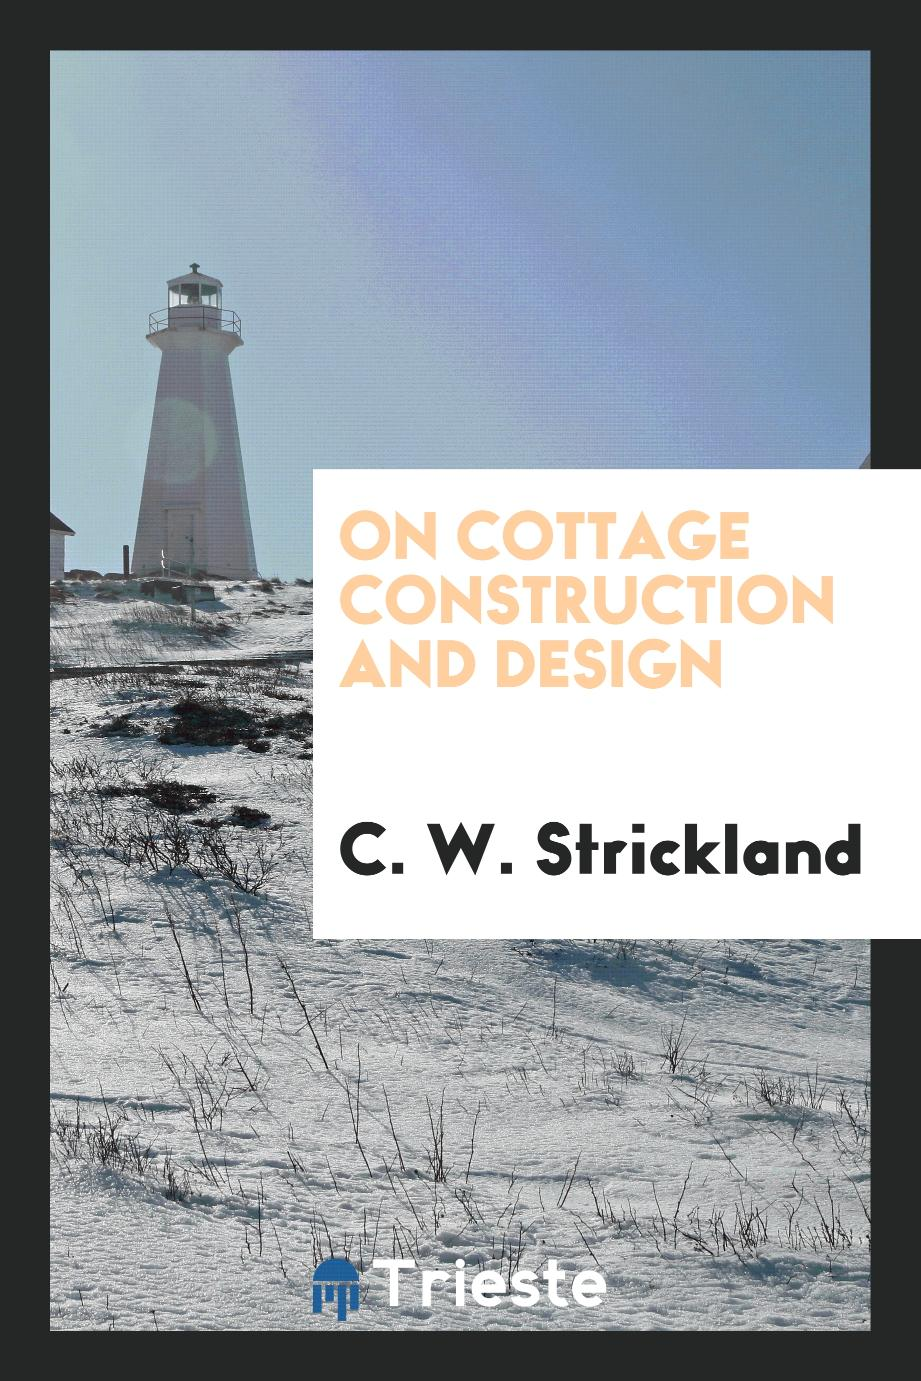 On Cottage Construction and Design